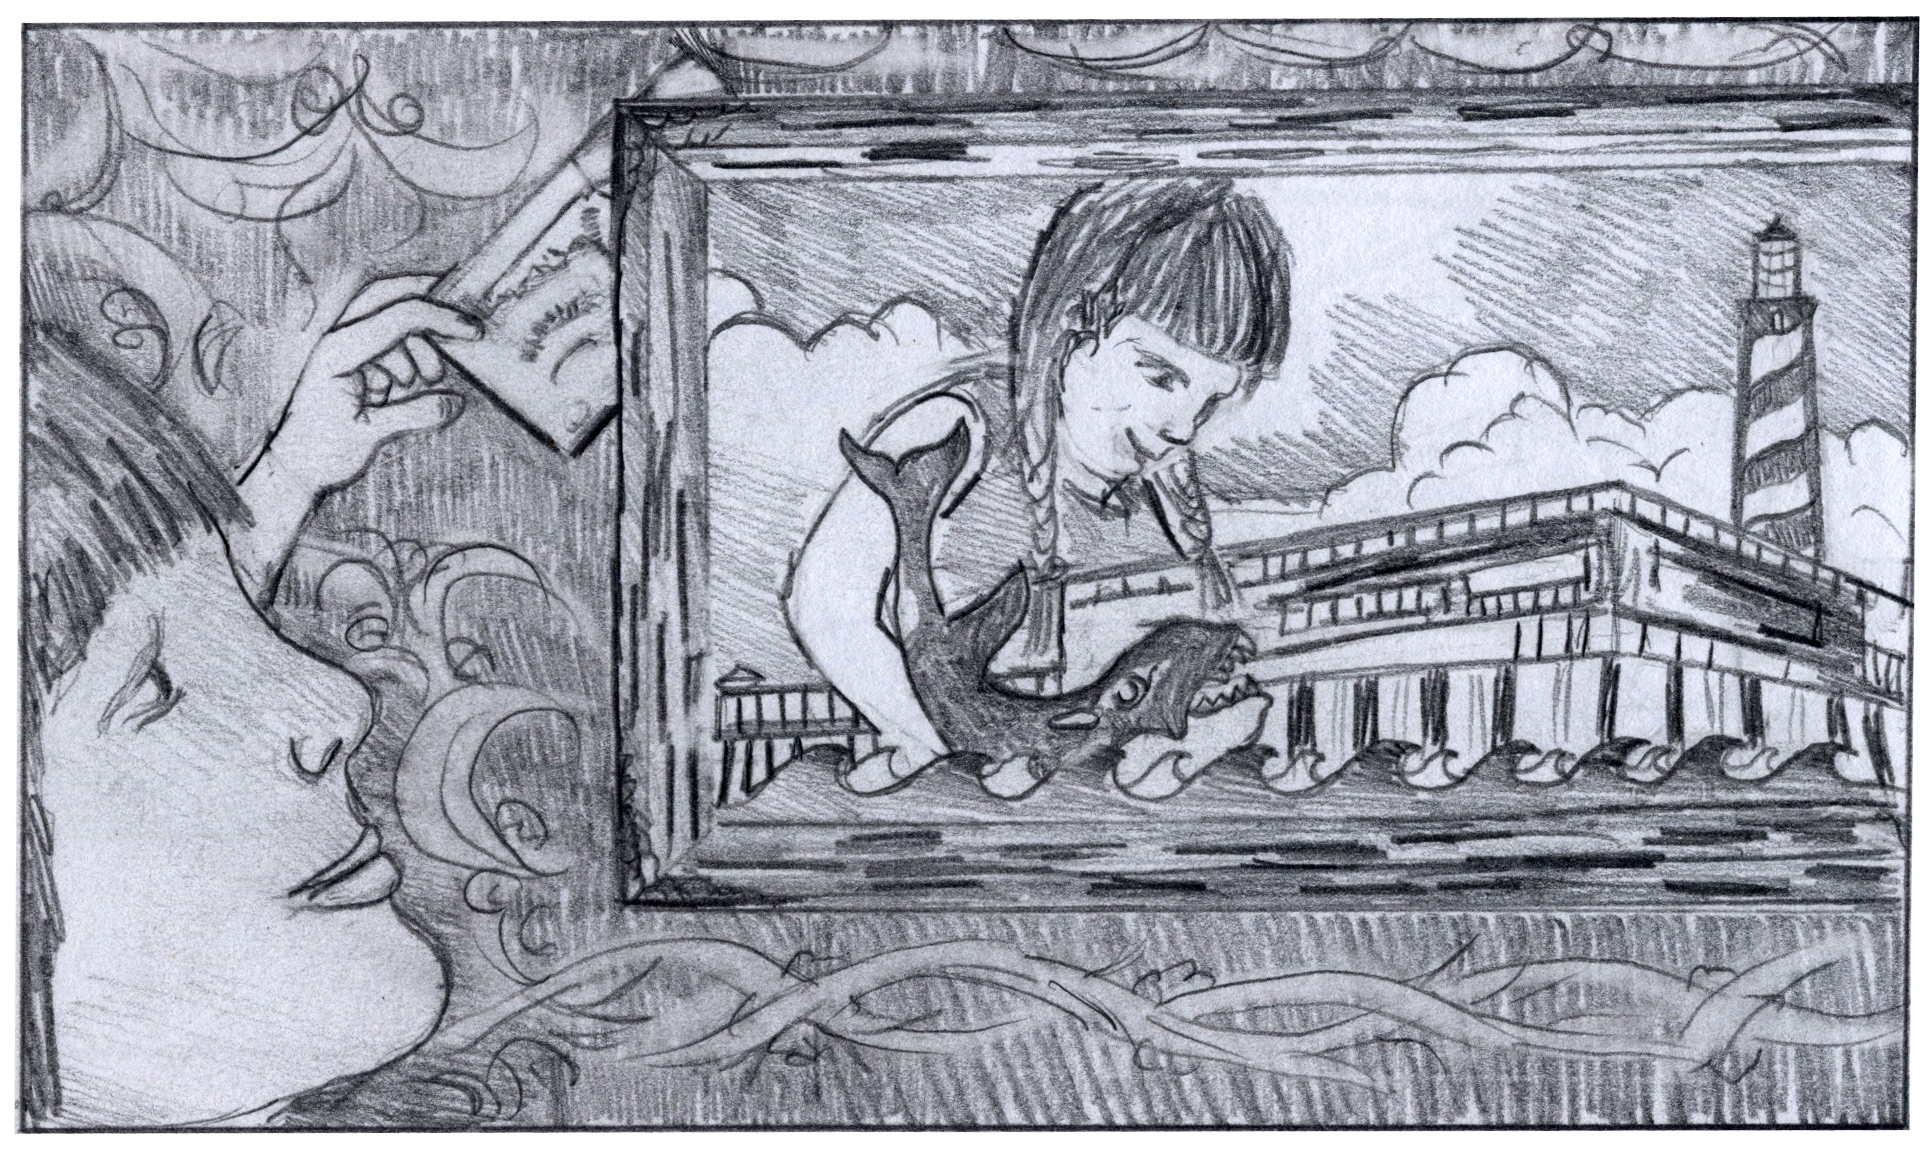 storyboard for UF Shands commercial